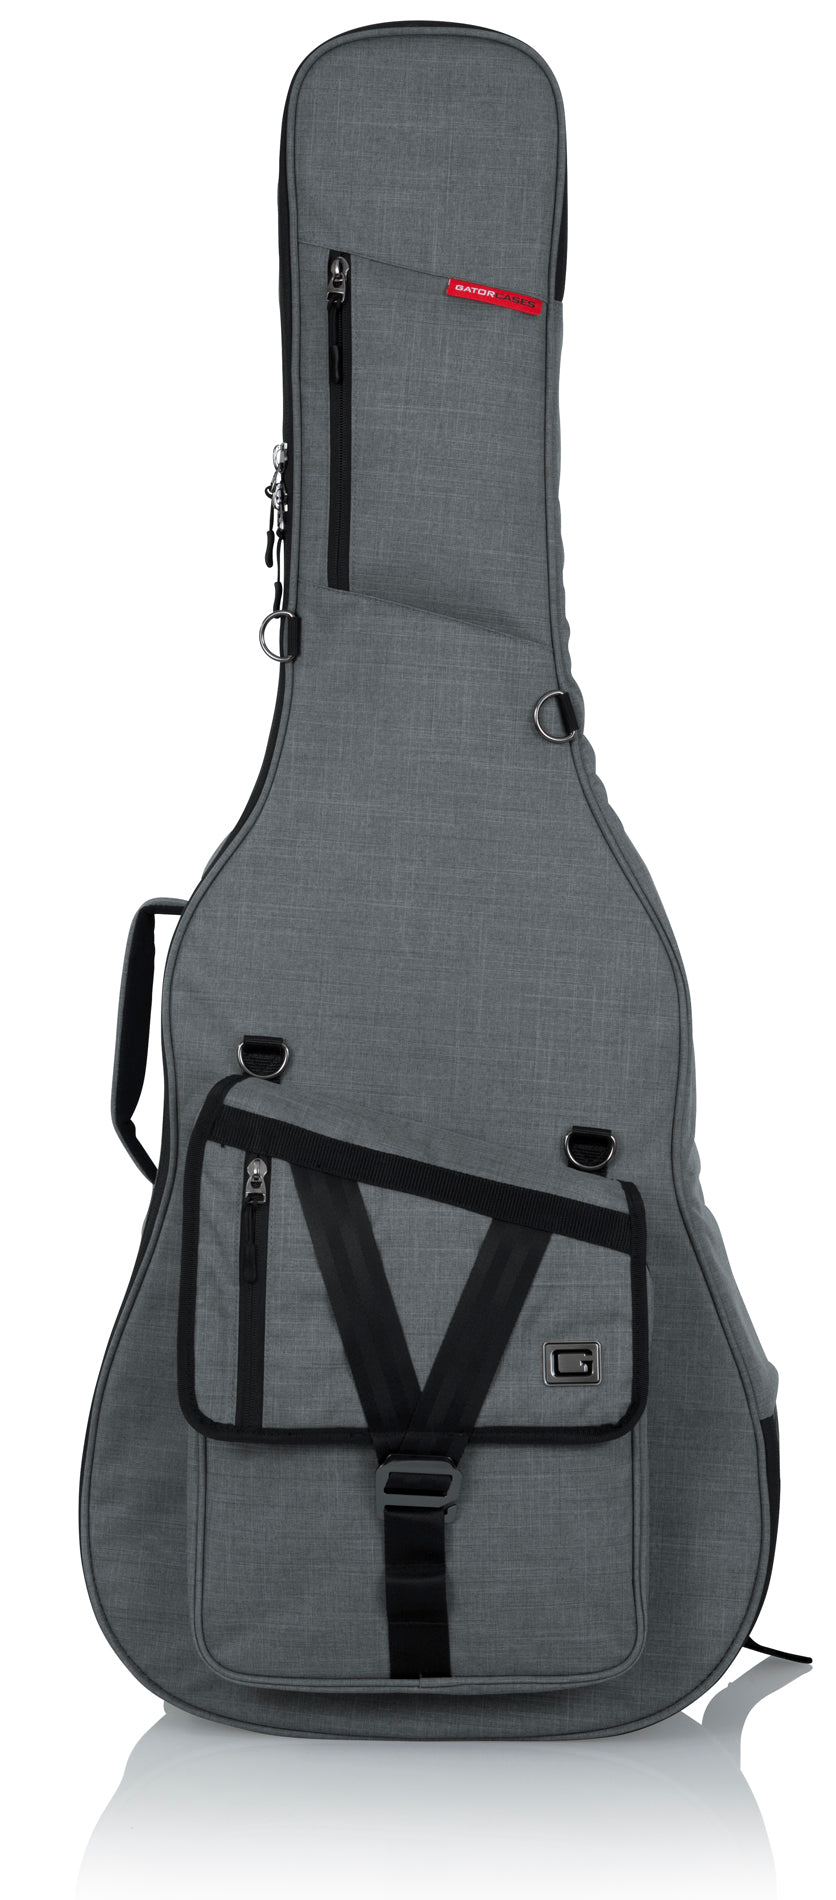 Gator GT-ACOUSTIC-GRY Transit Acoustic Guitar Bag - Light Grey